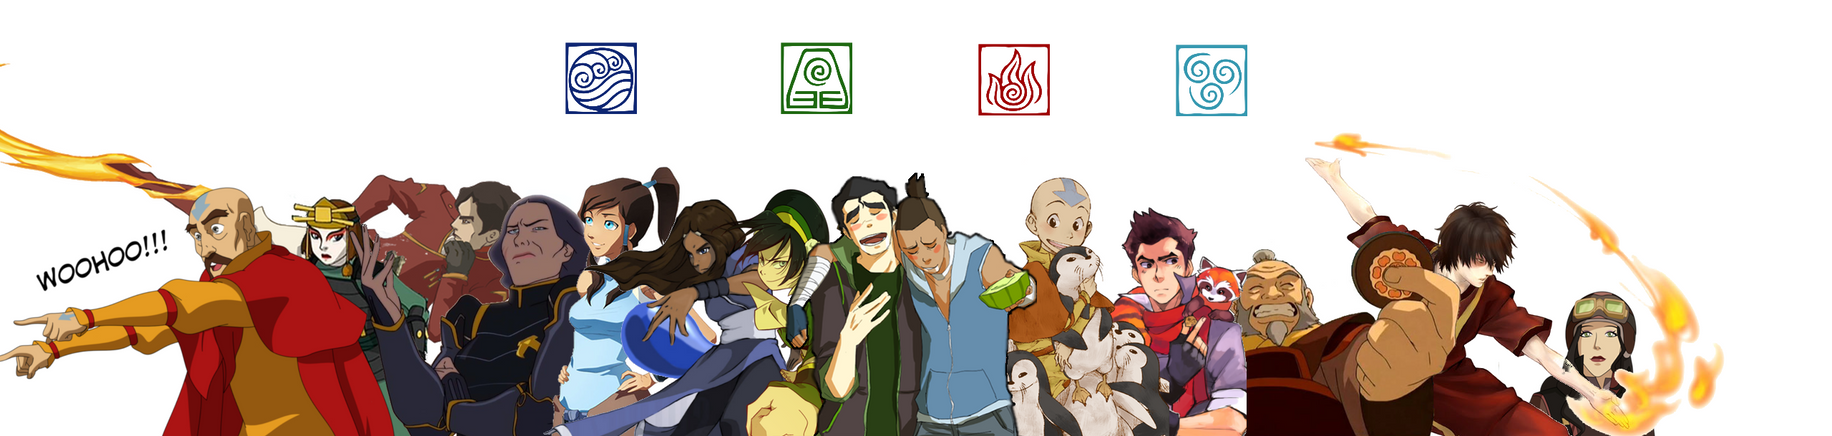 Avatar-Friends by RupertRock